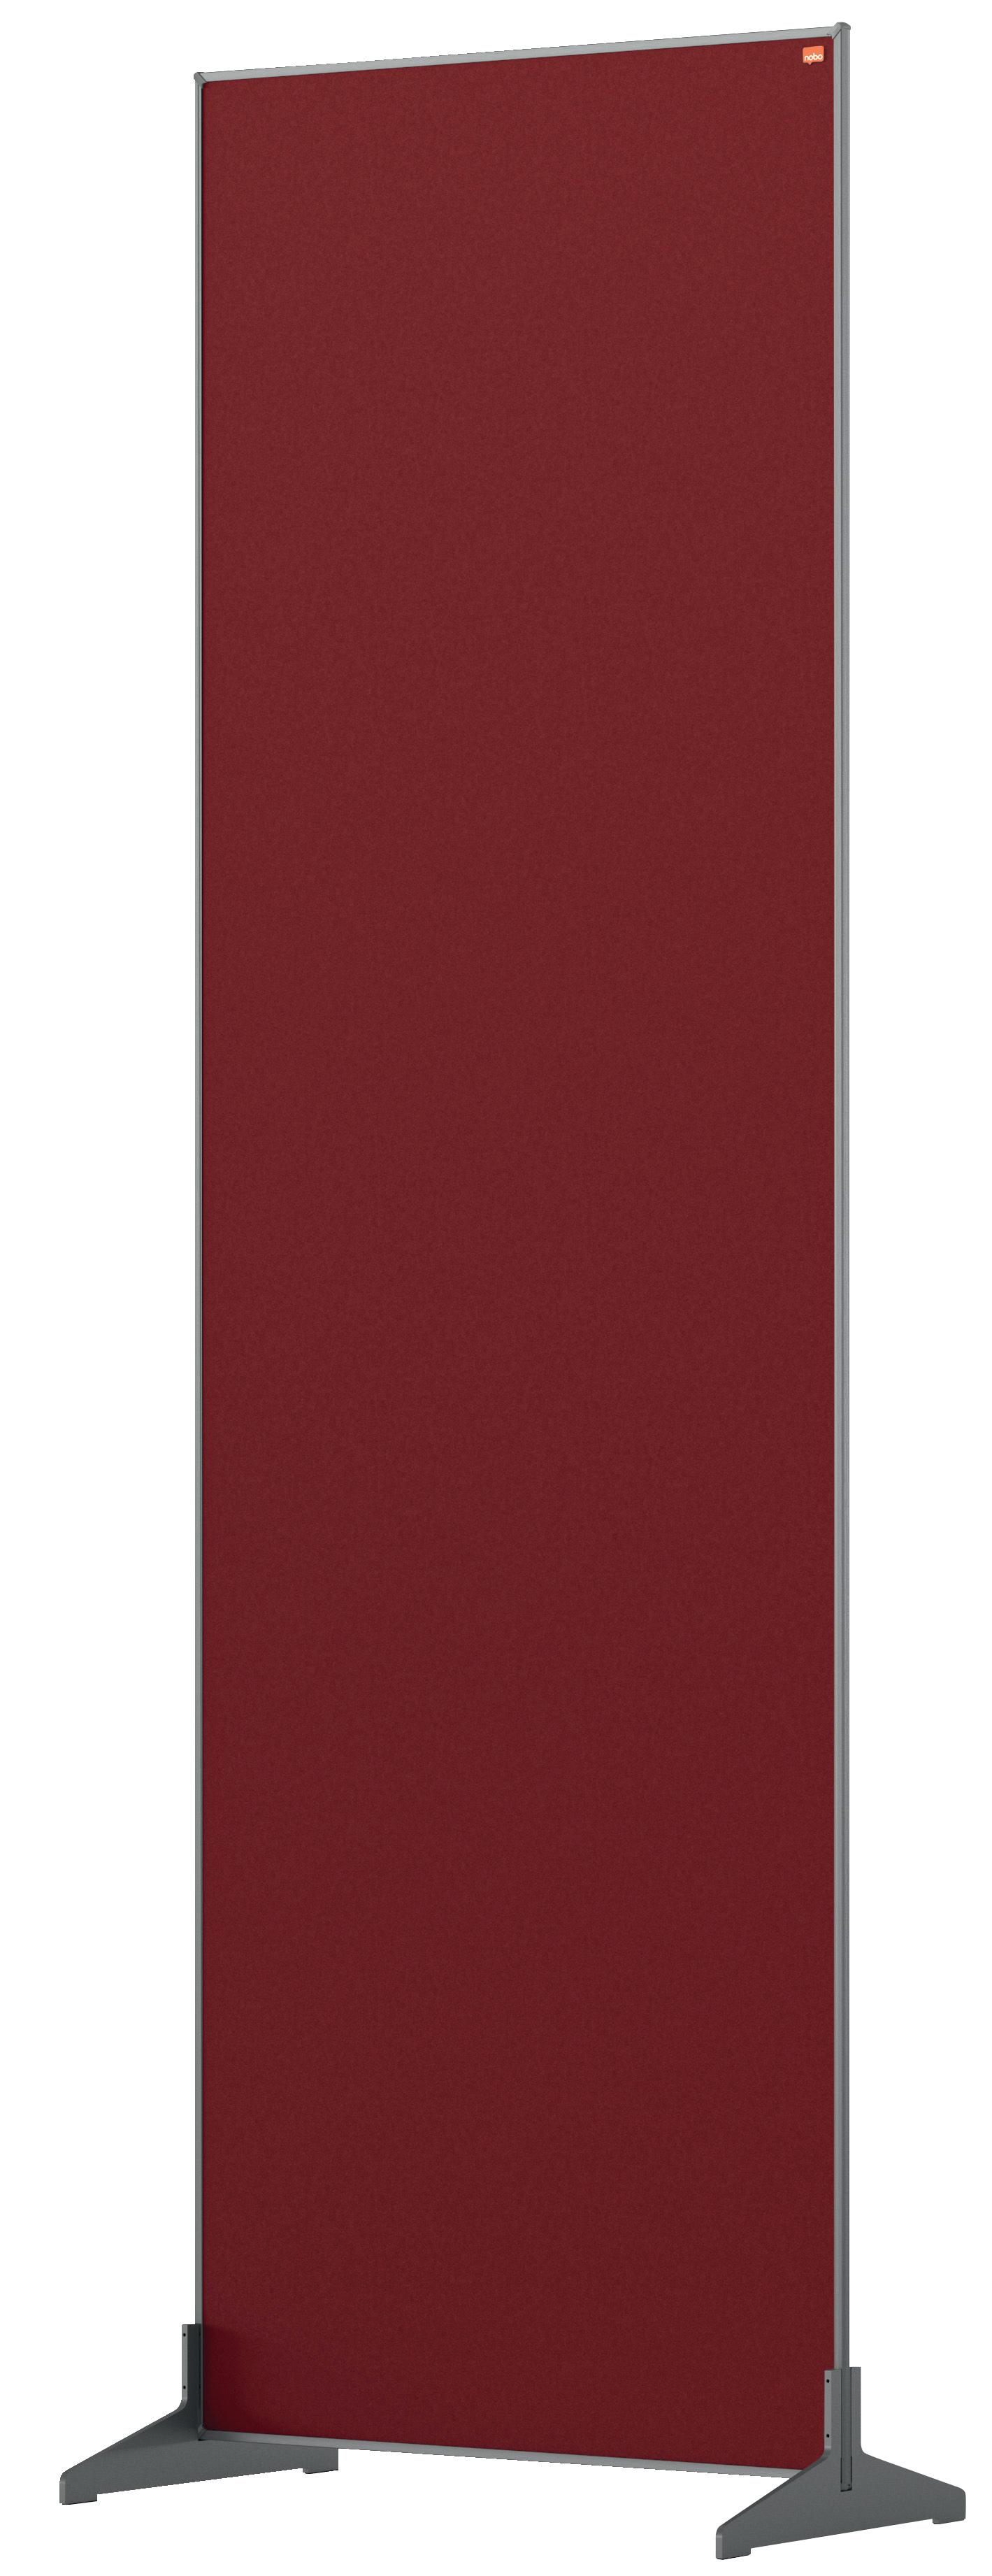 Straight Tops Nobo Impression Pro Floor Divider 600x1800mm Red